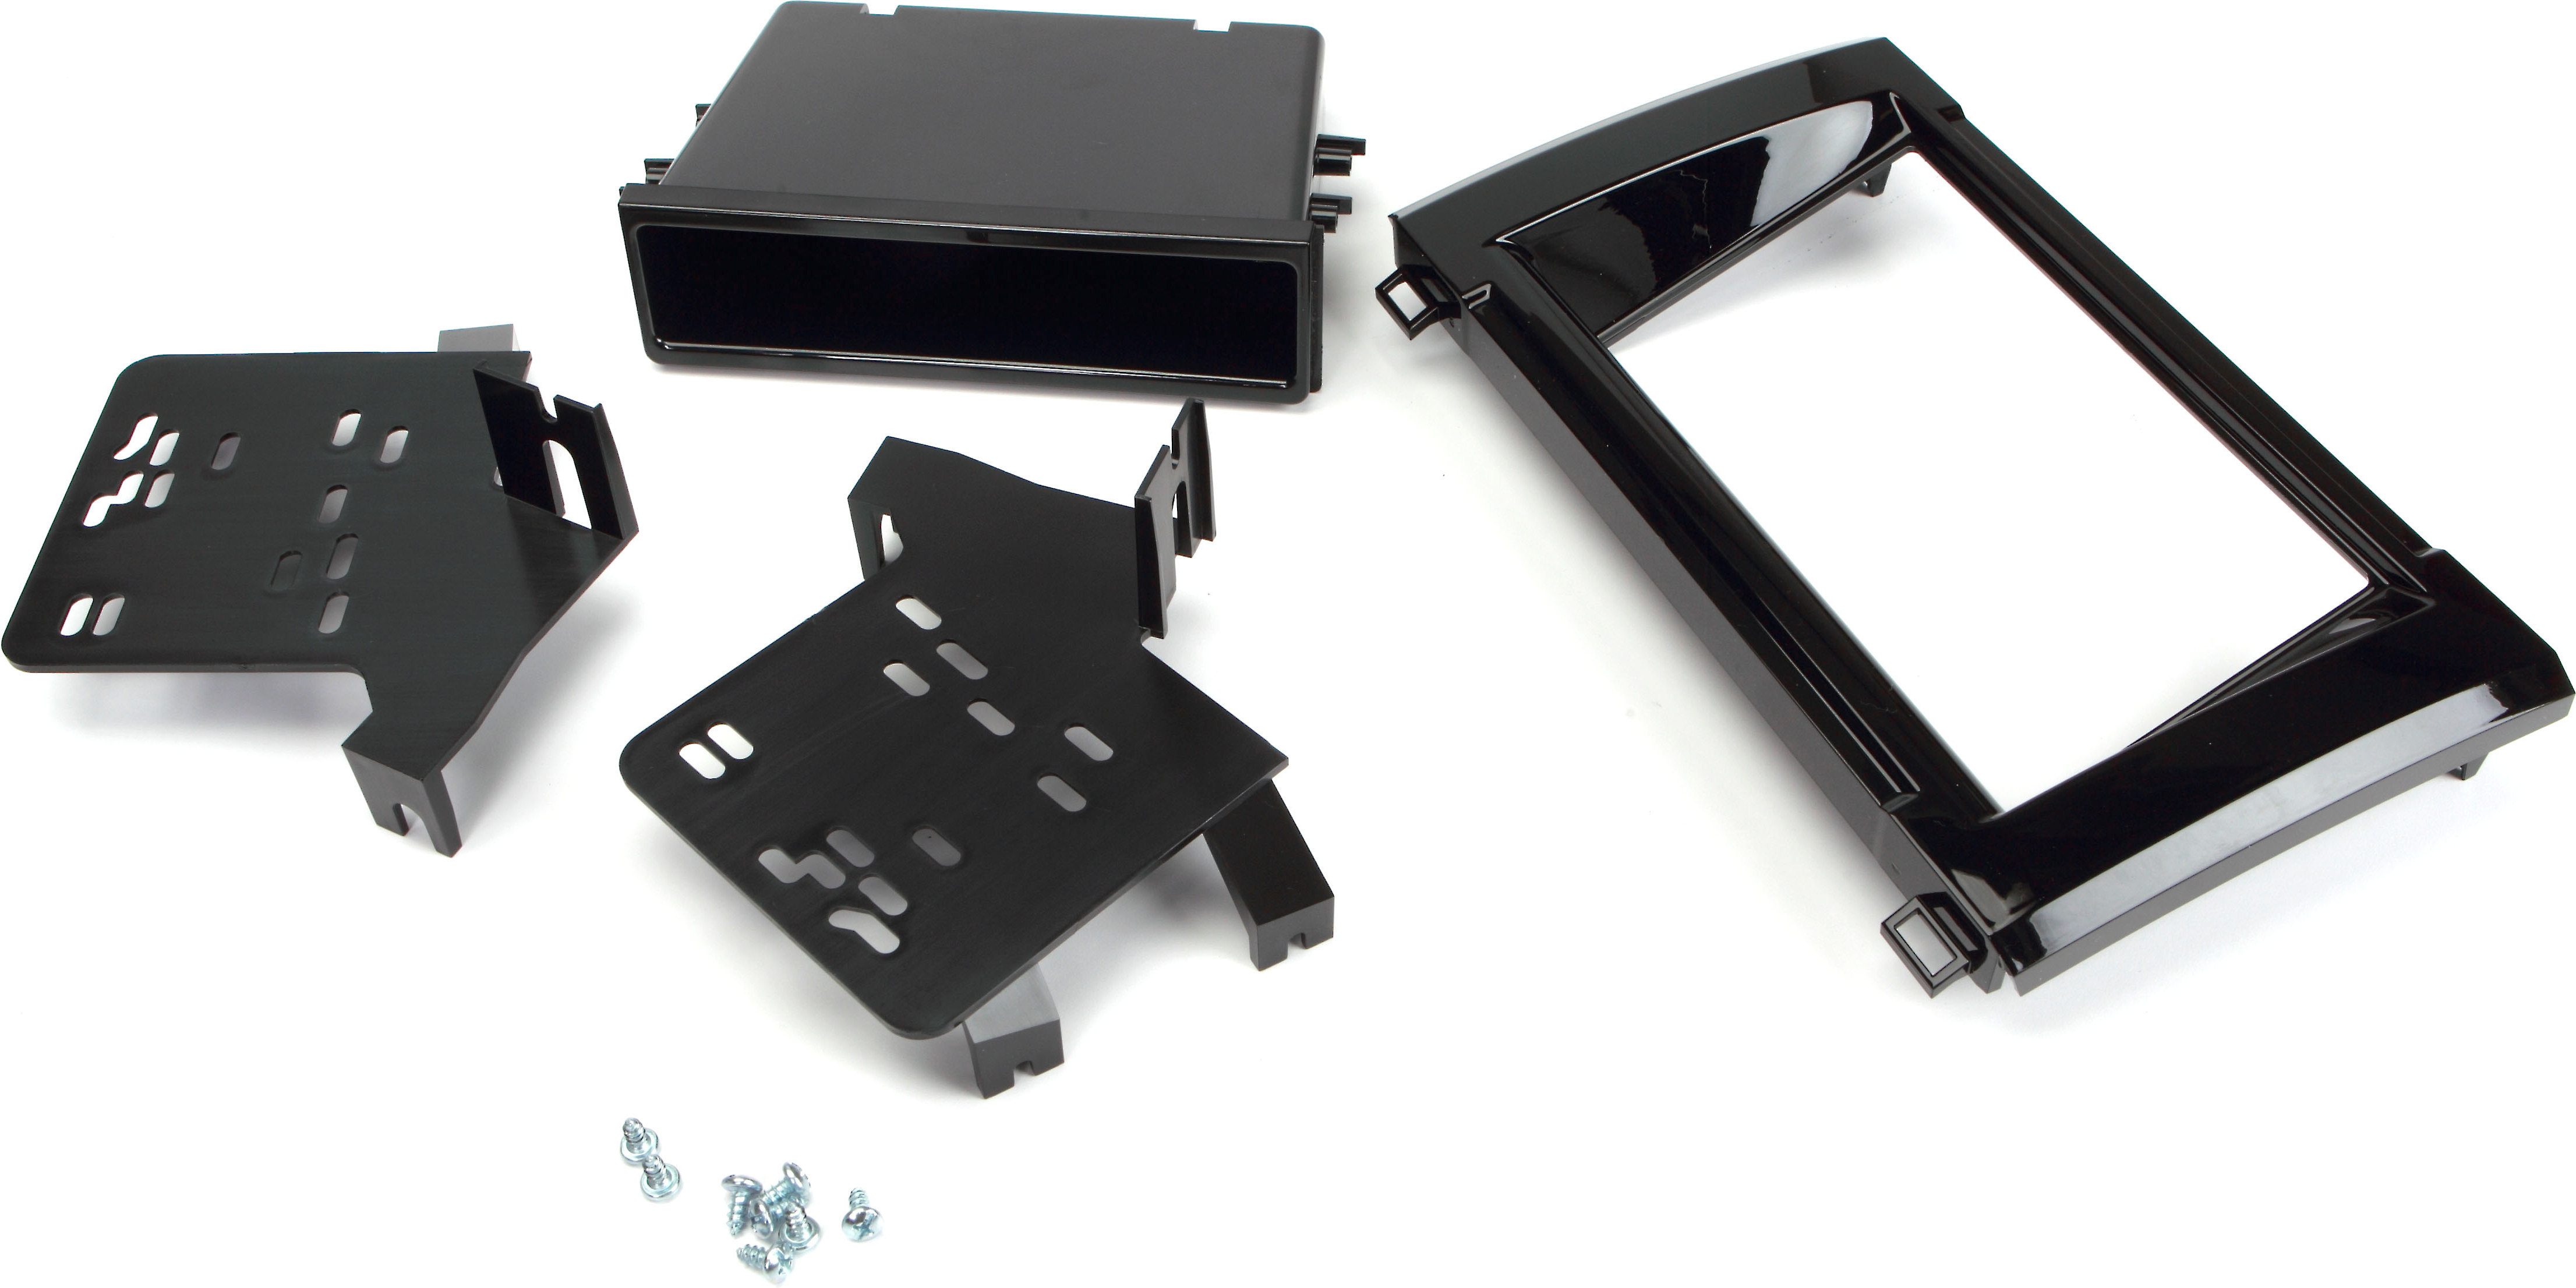 Metra Silver 99-8252 Mounting Kit for Toyota Tundra 2014 /& Up